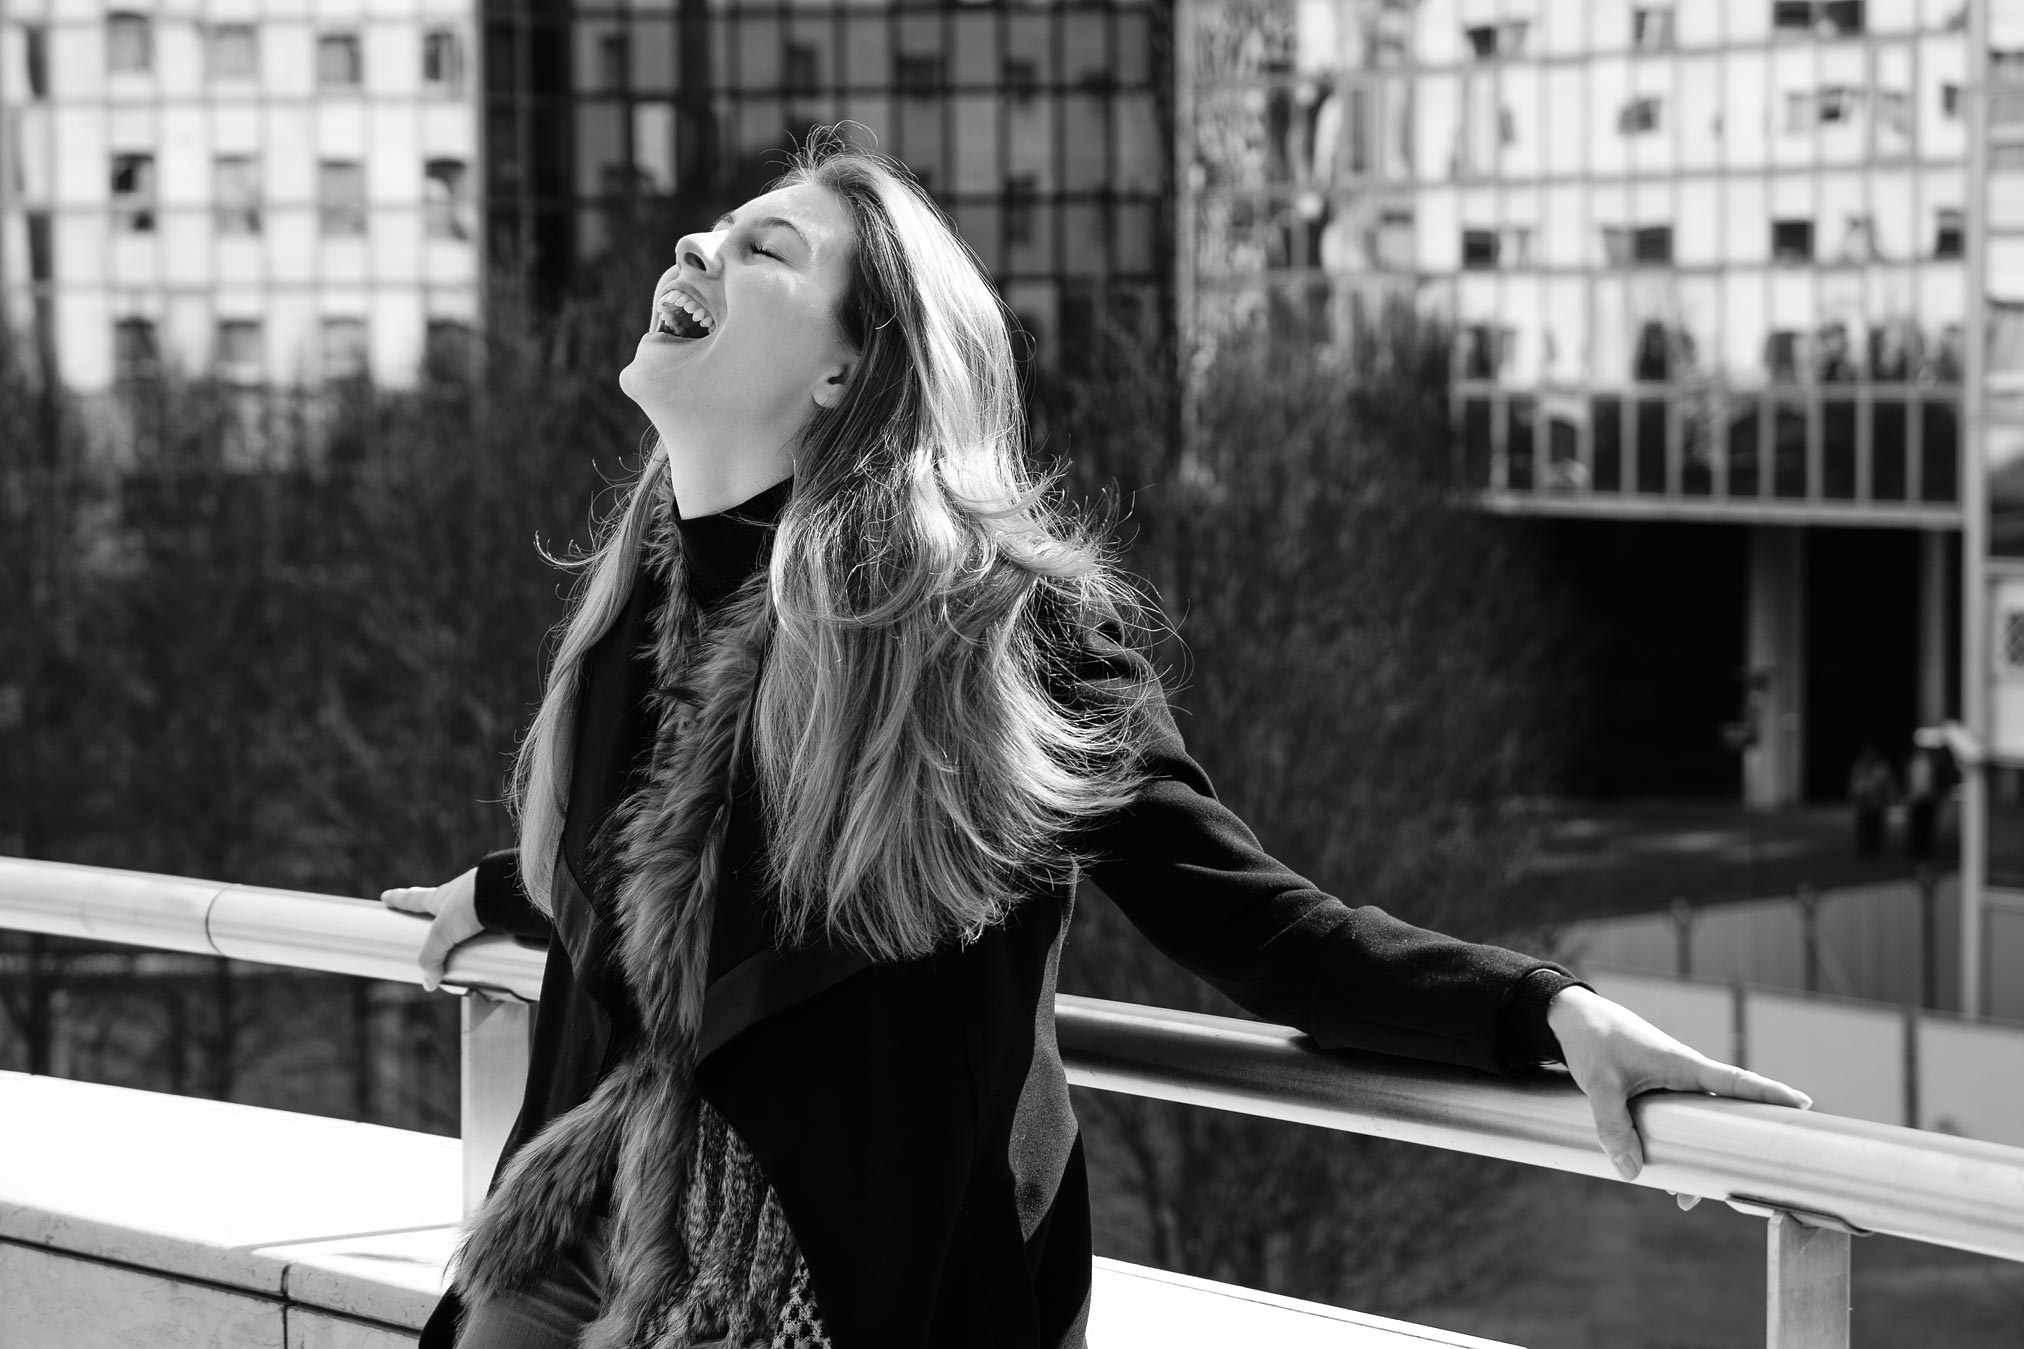 Alicia Endemann in Paris reacting to me turning her down in marriage.